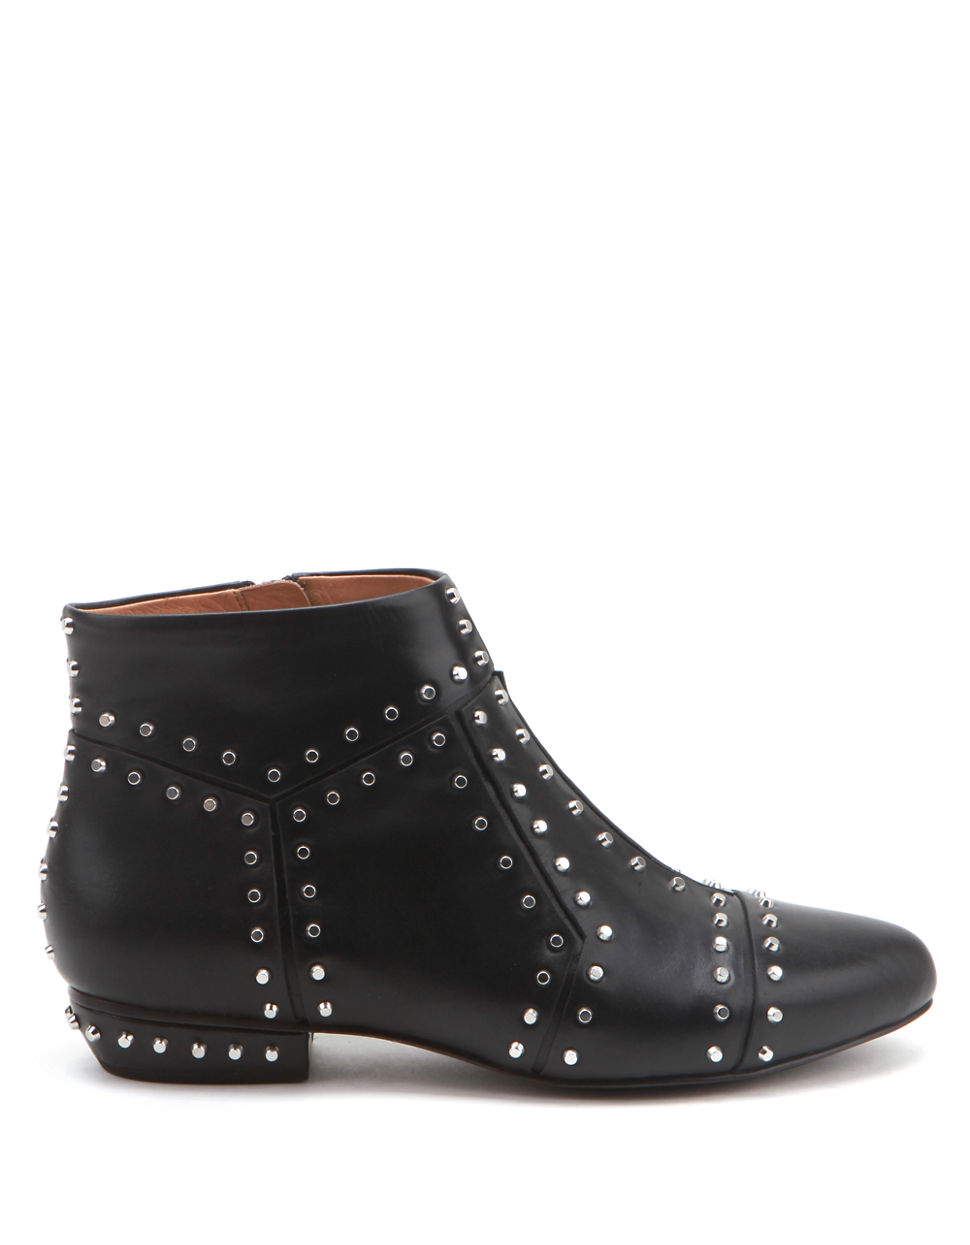 United nude Rivet Studded Leather Booties in Black